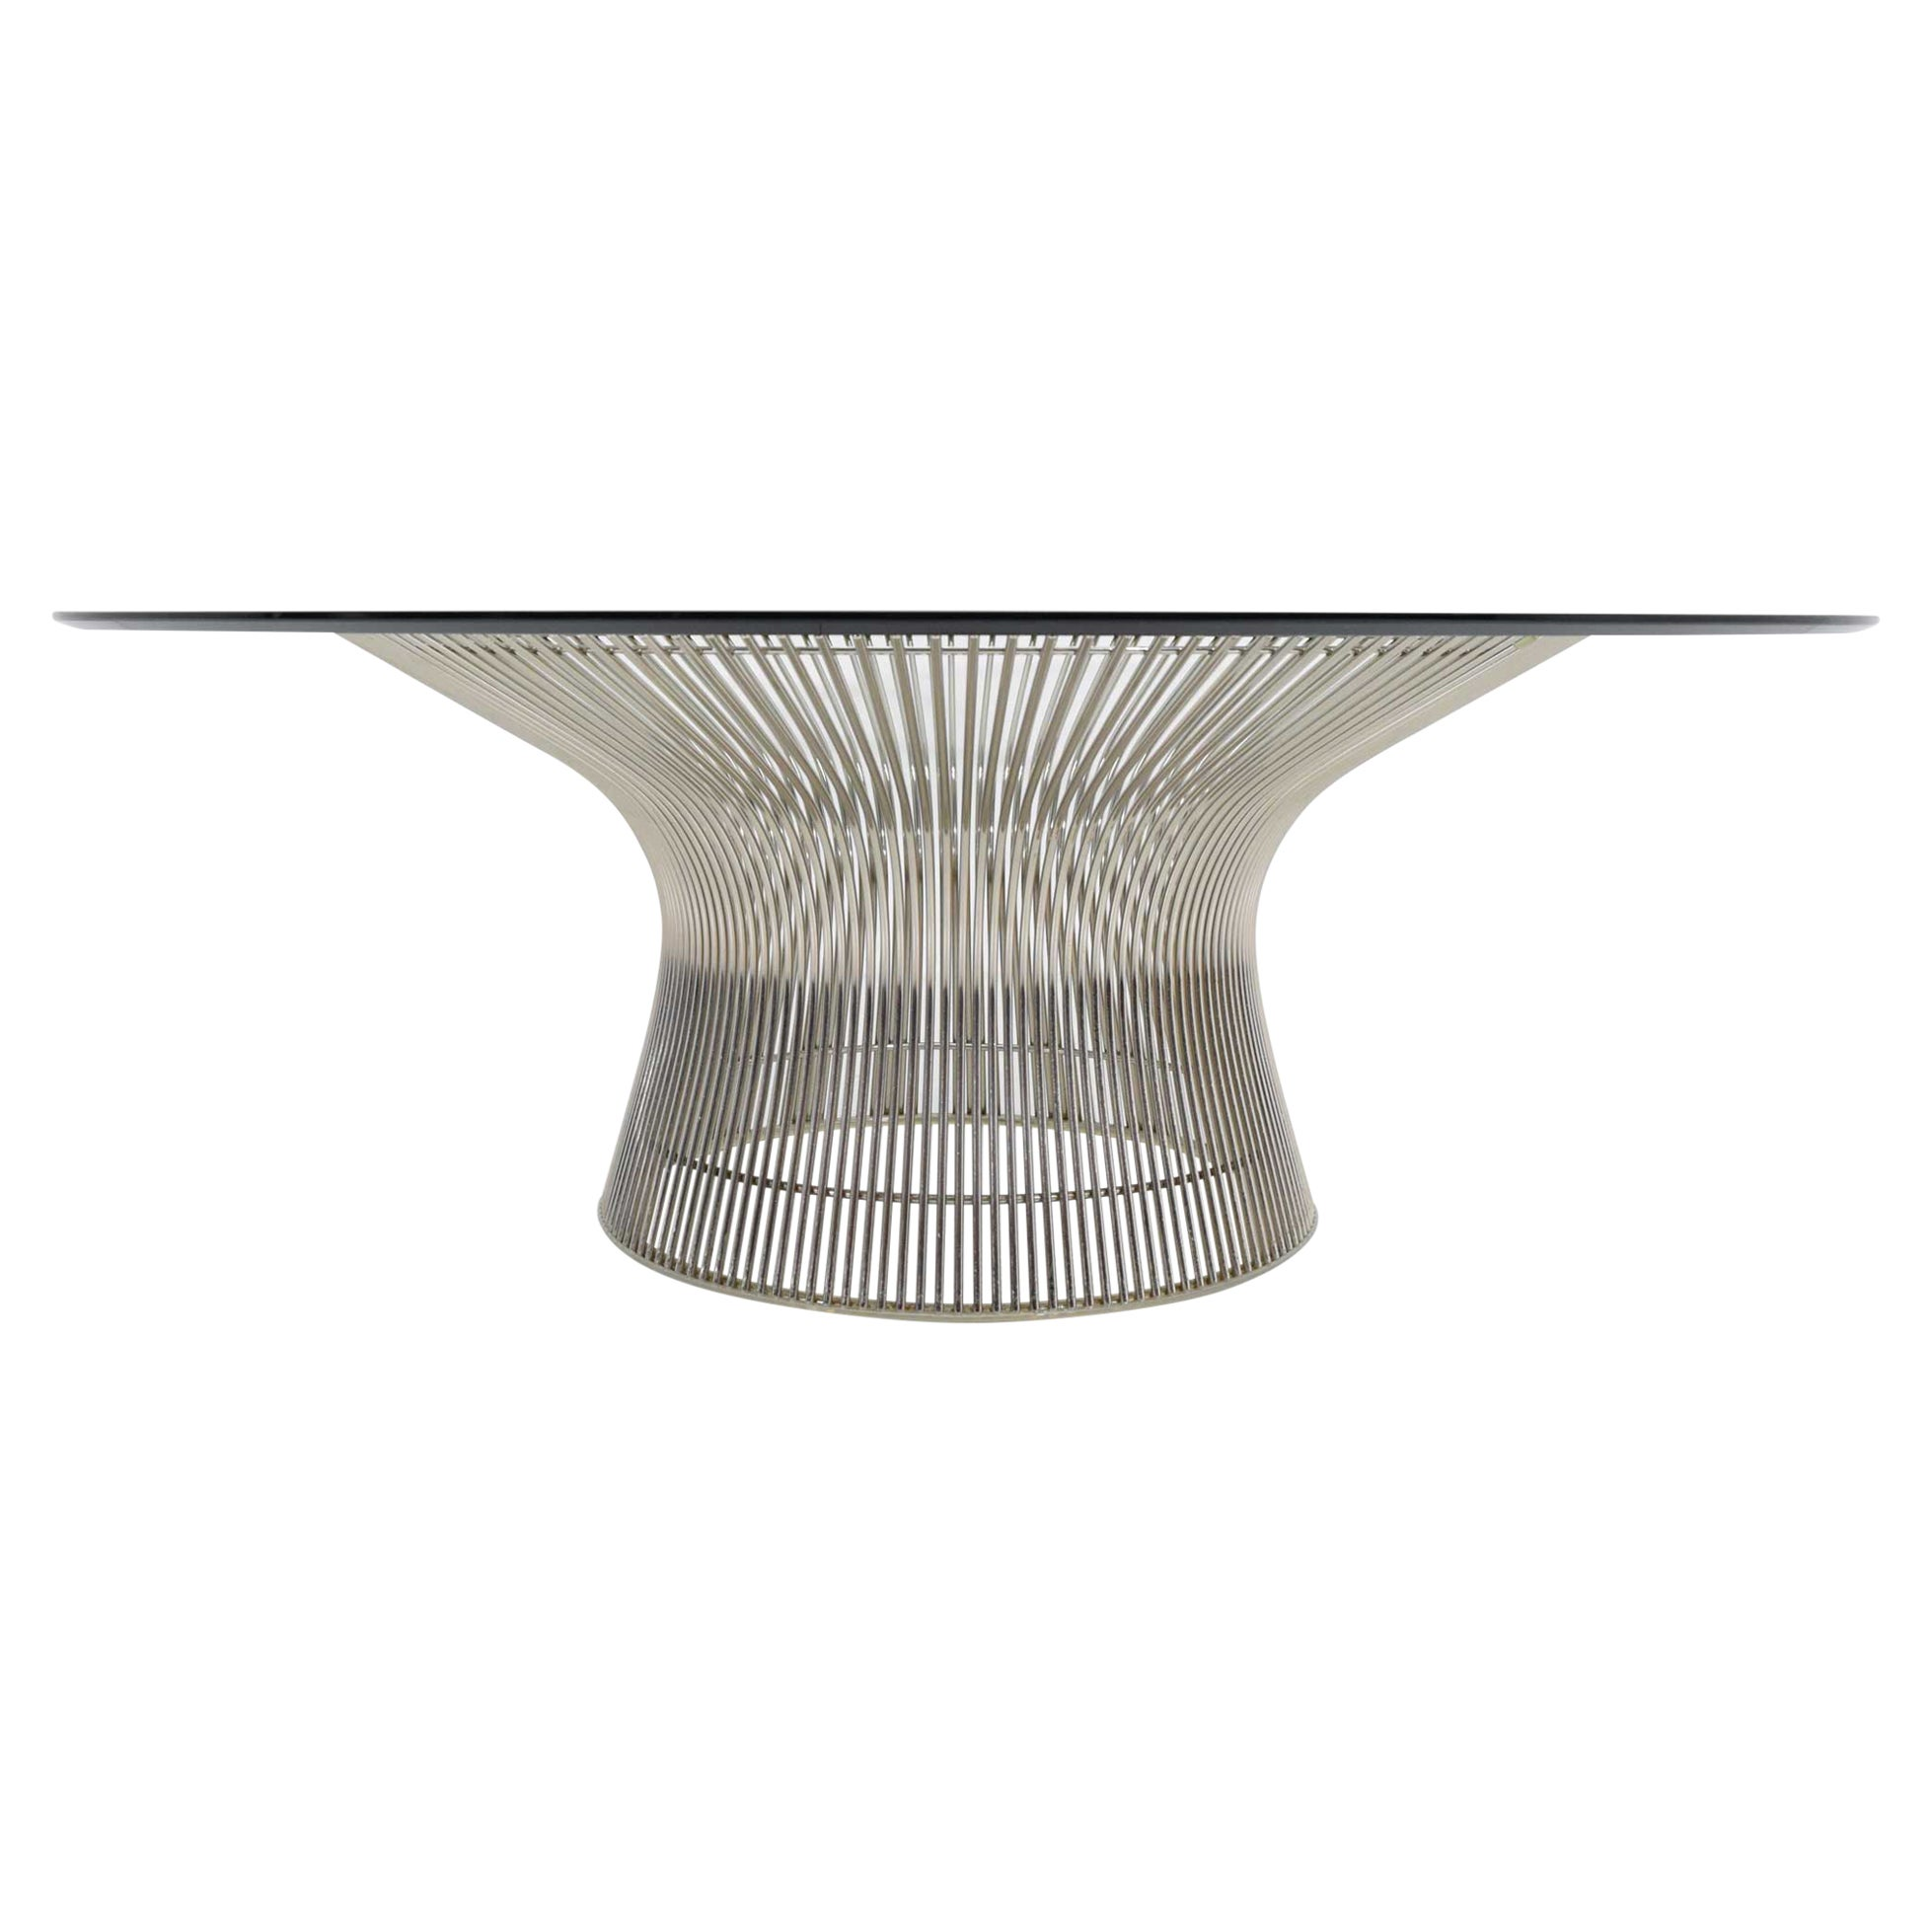 Warren Platner for Knoll Nickel Plated Cocktail Coffee Table